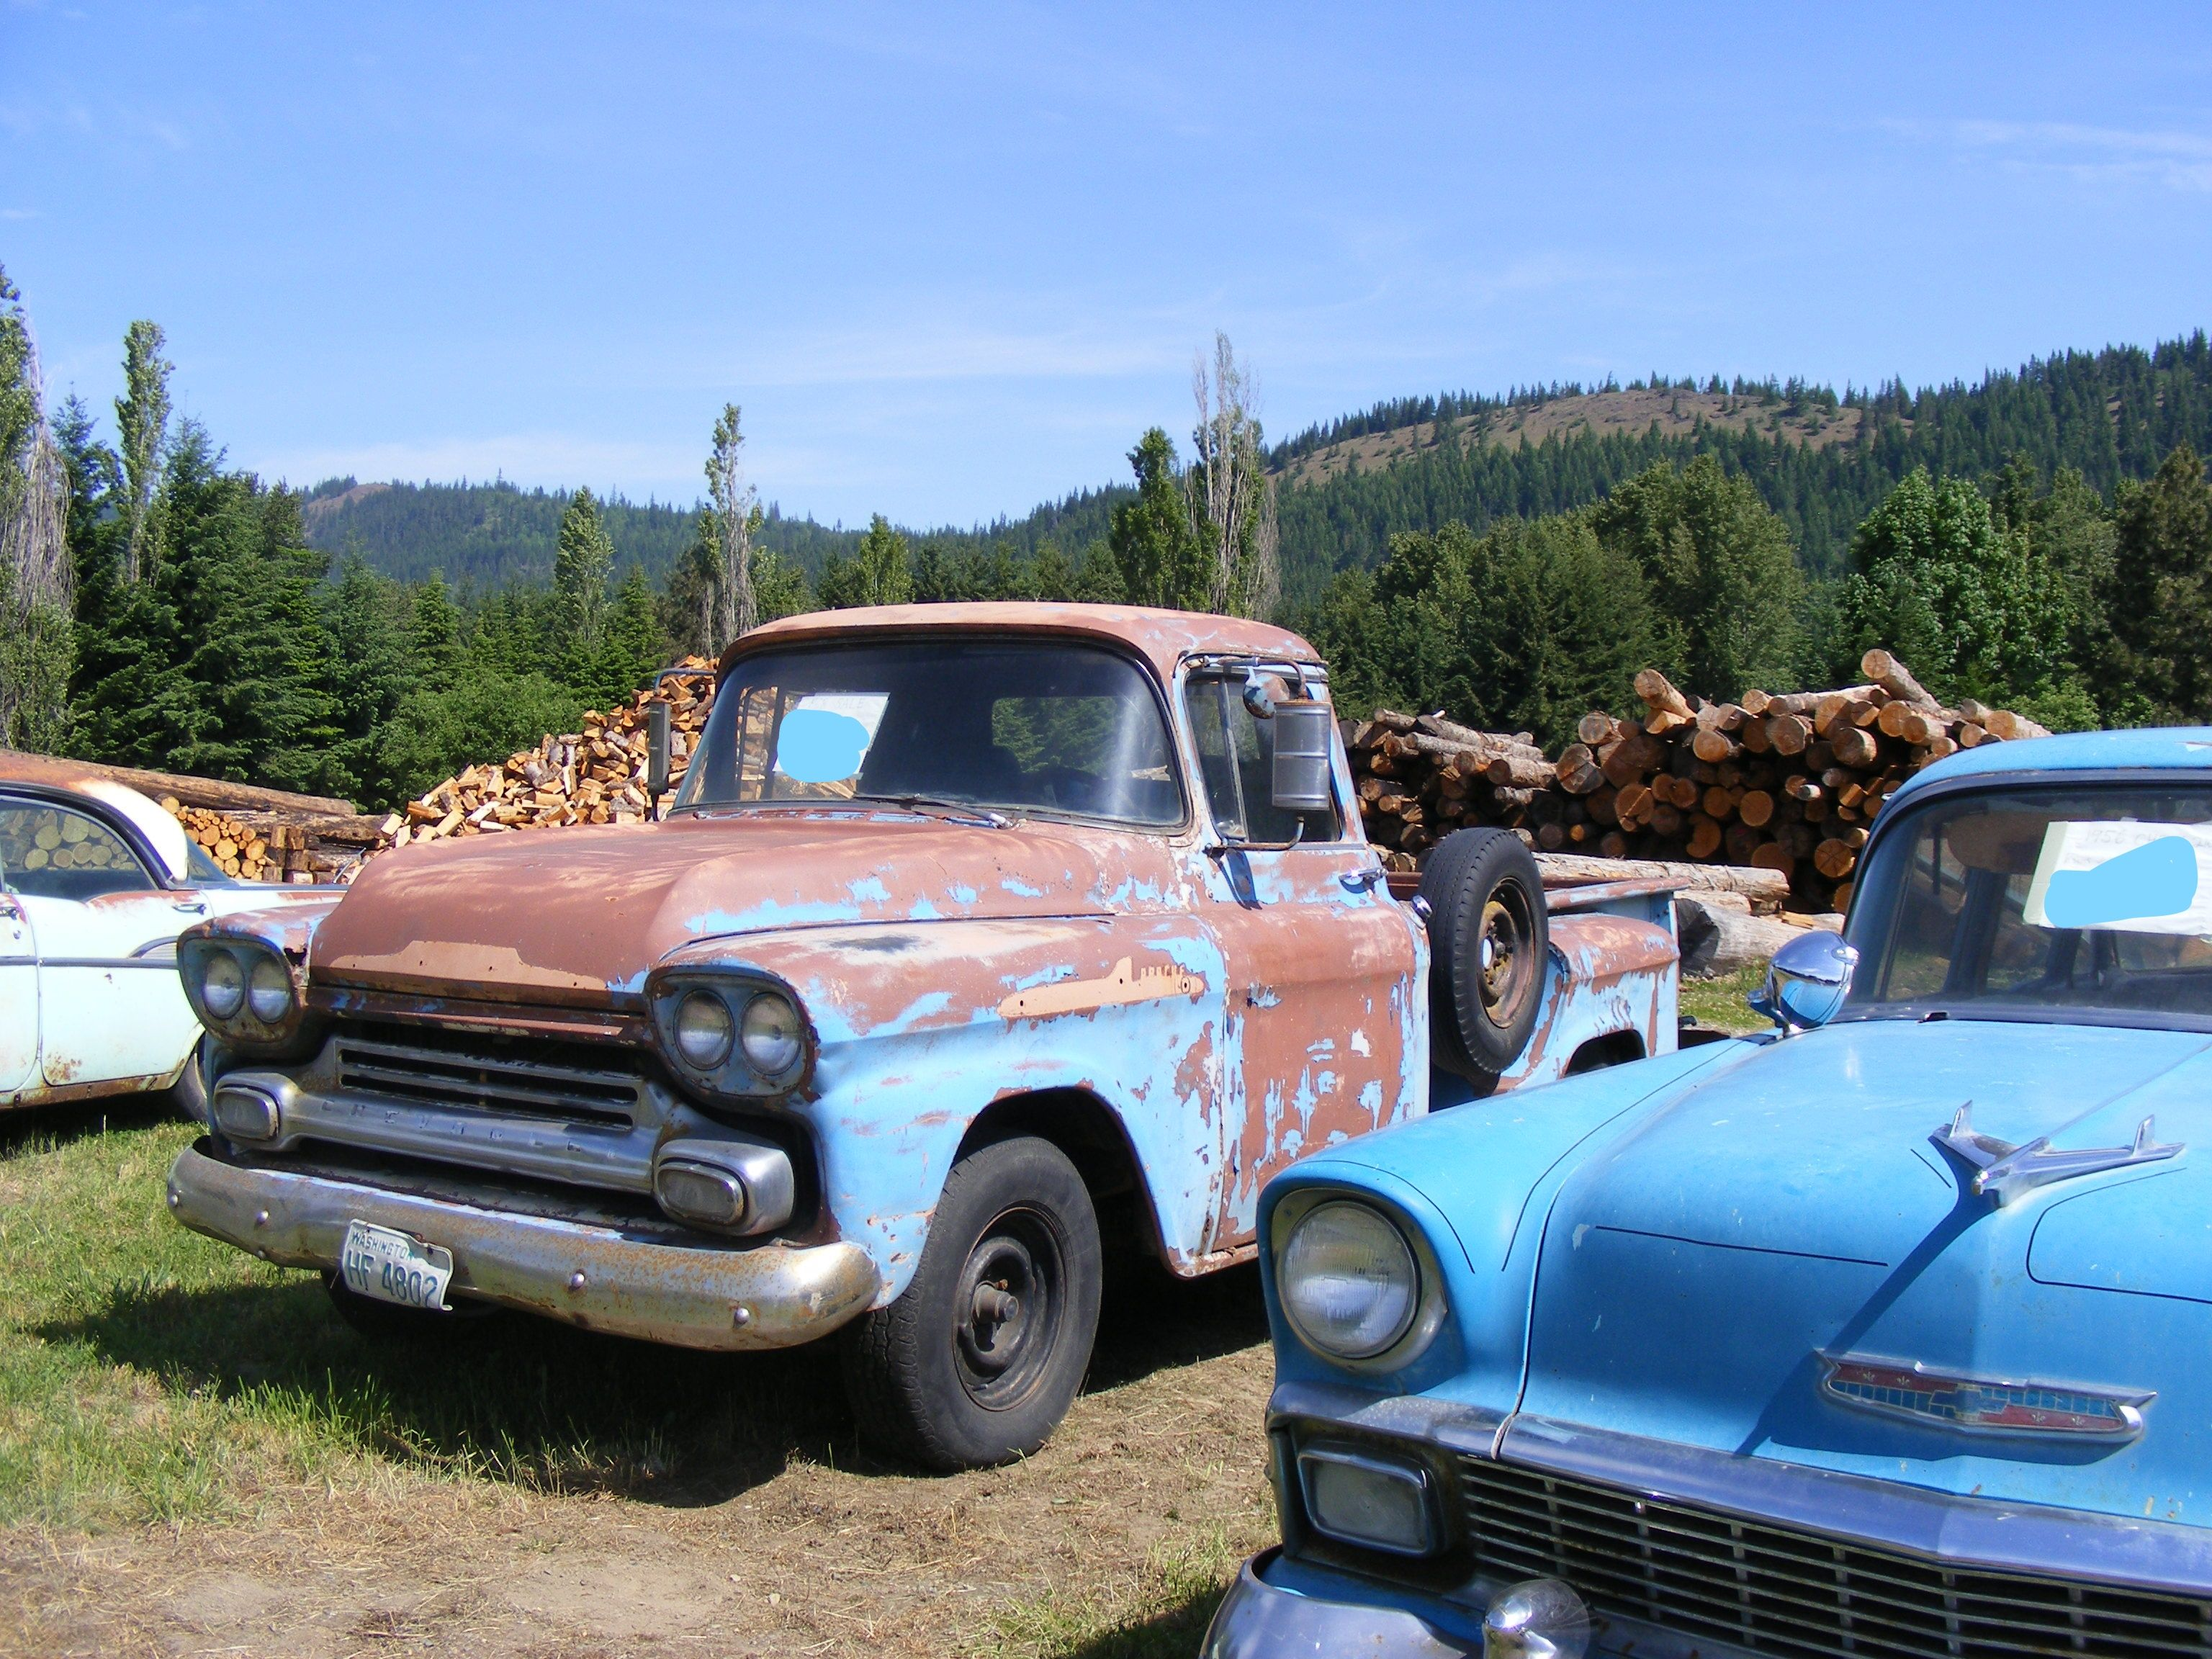 For Sale classic old cars Trucks @ I90 Easton/Cle Elum WA 47°12.2378 ...